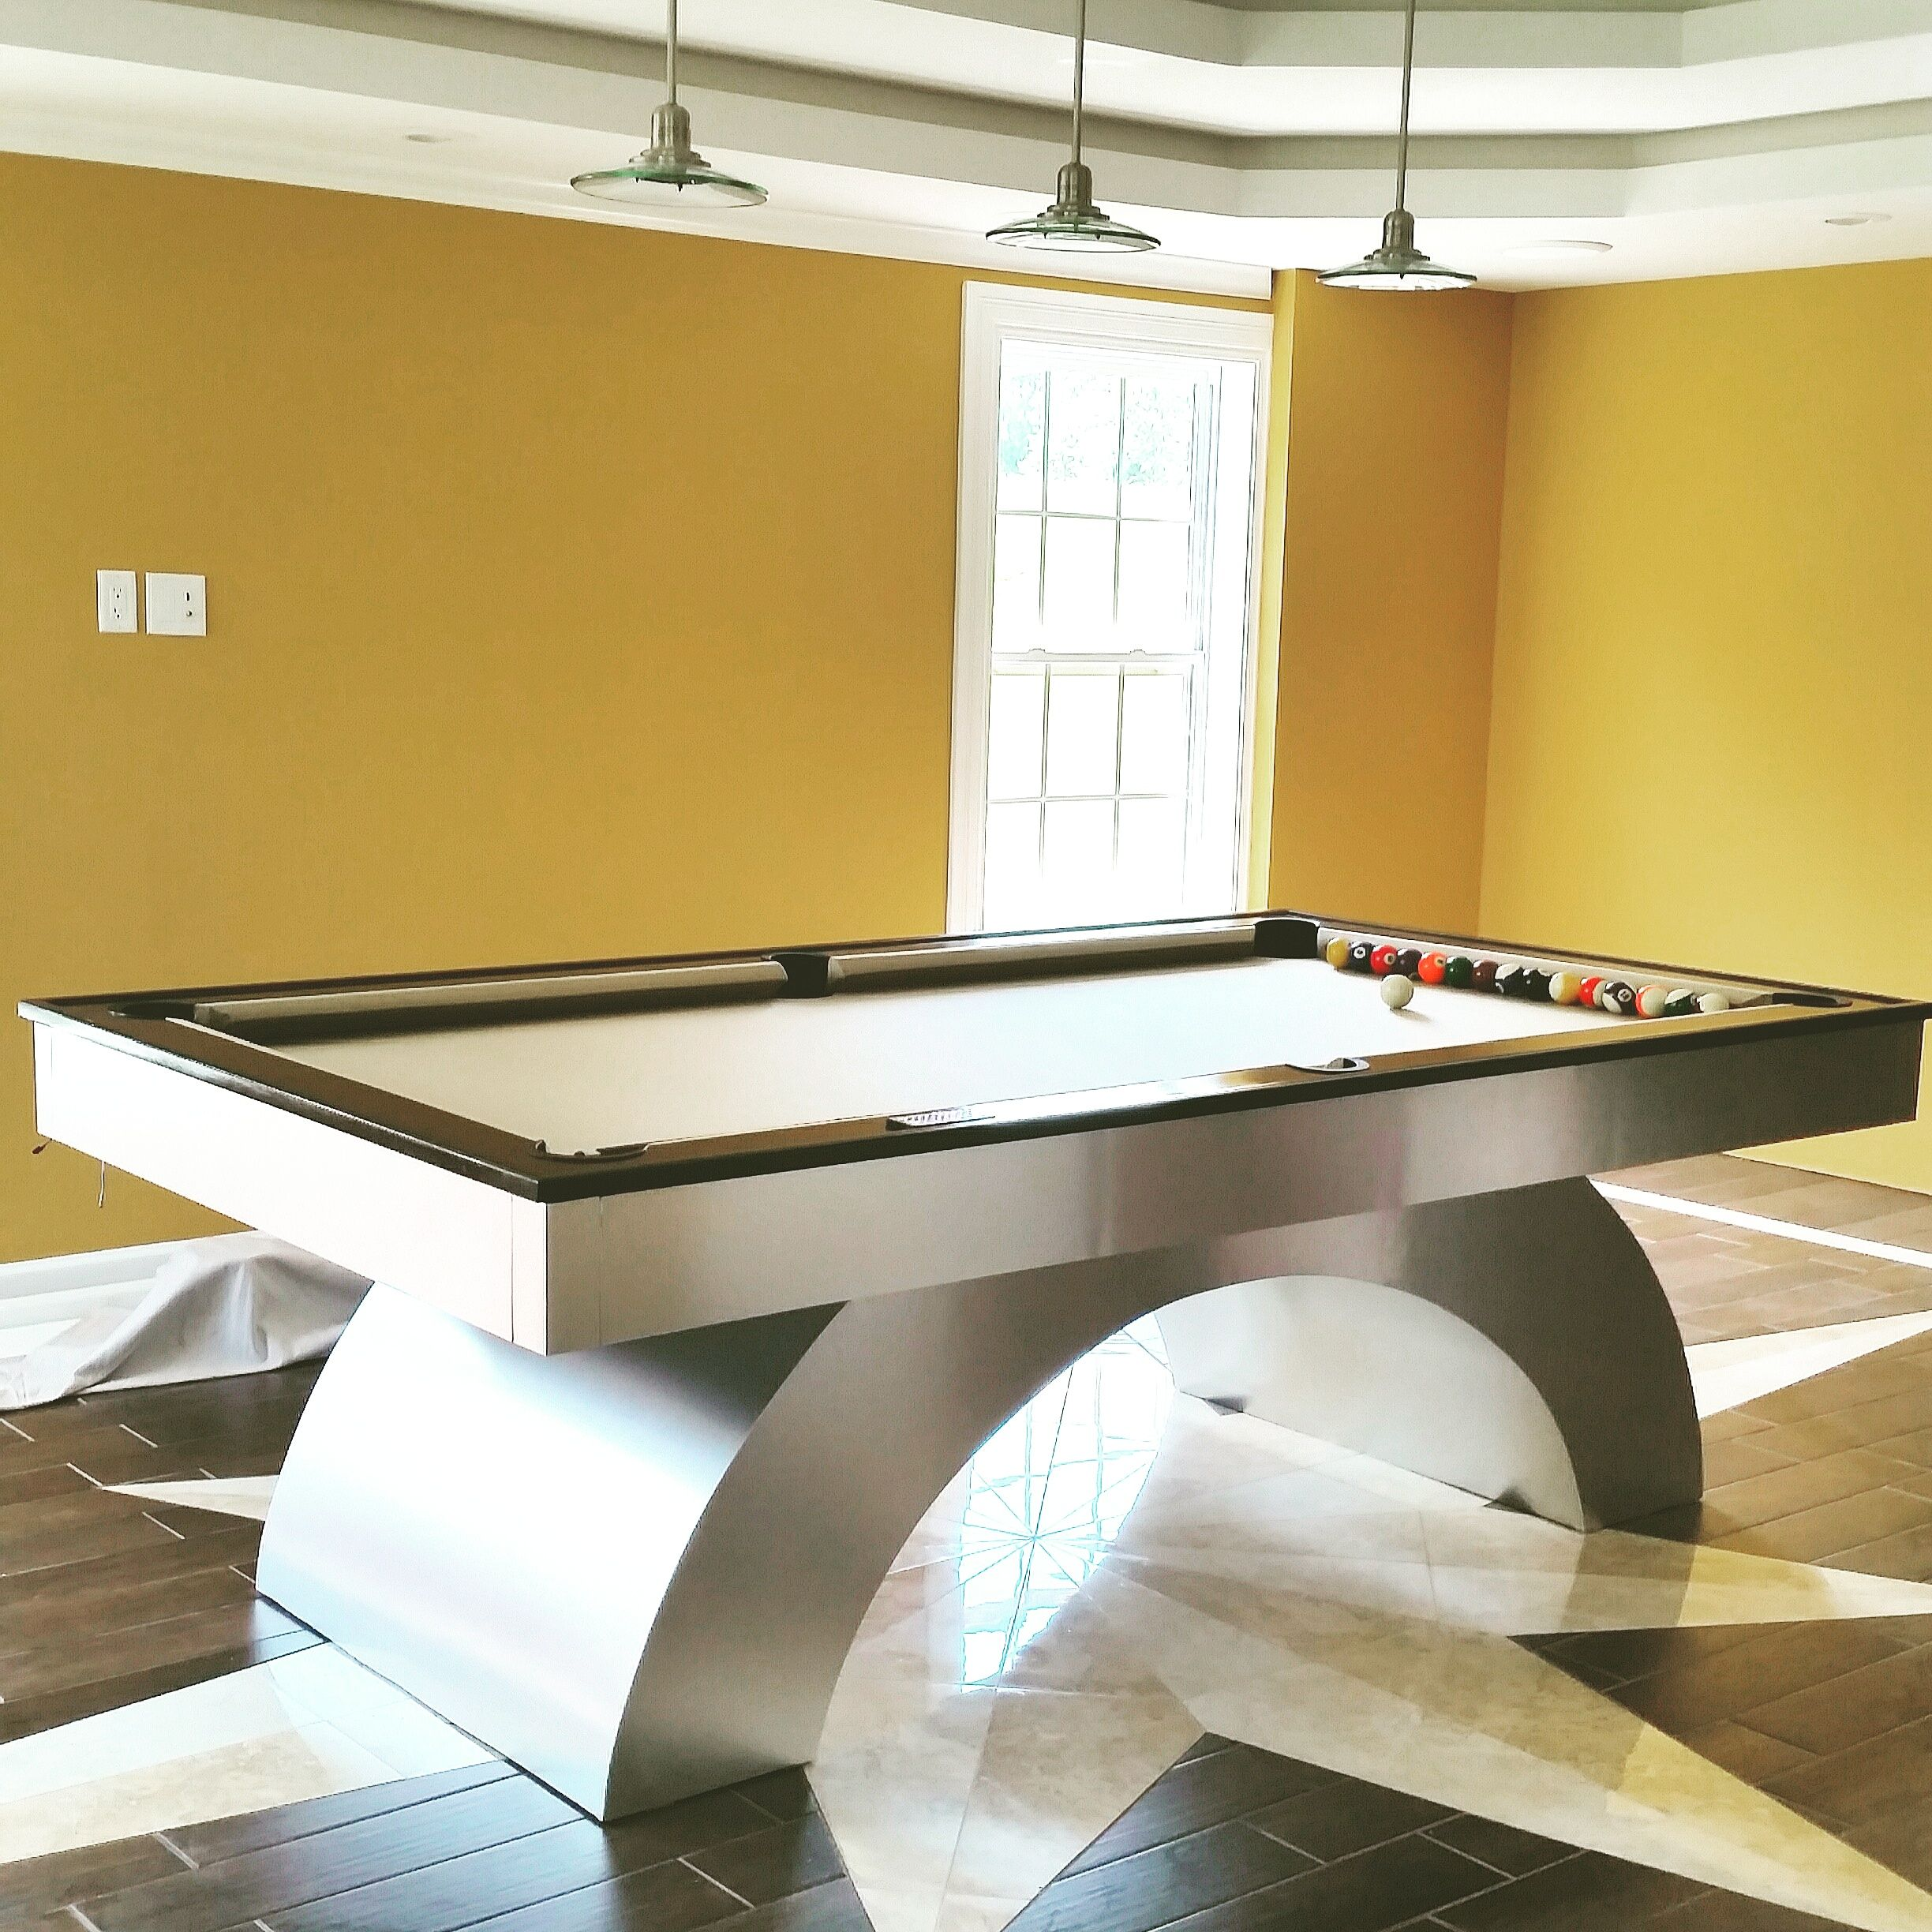 Buy Hand Crafted 8ft Arched Pool Table With Led Lights